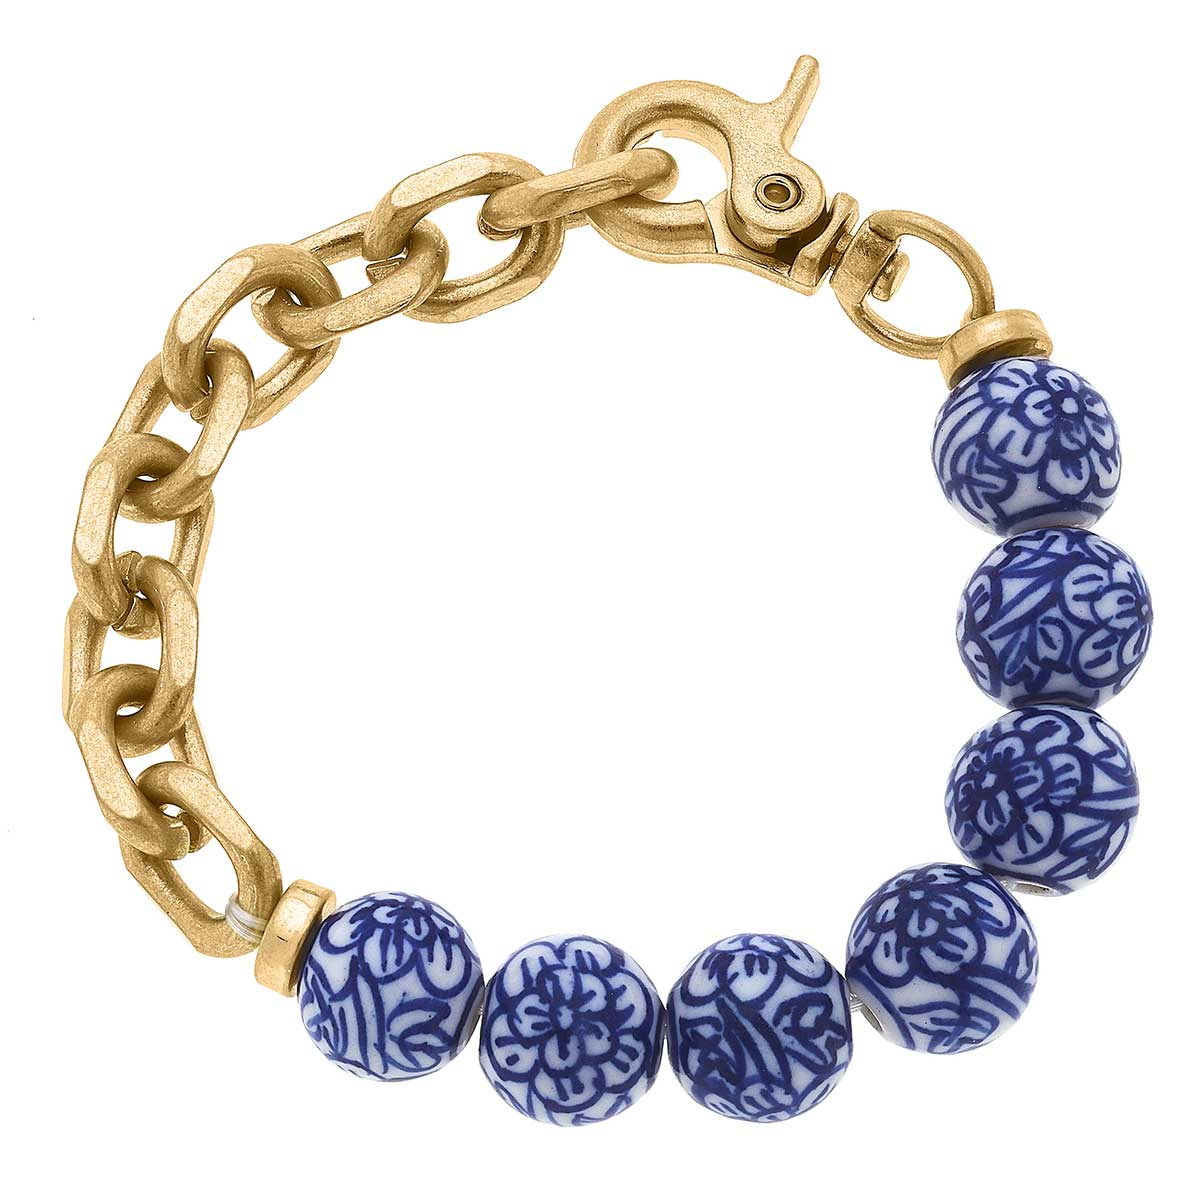 Paloma Chinoiserie & Chunky Chain Bracelet in Blue & White